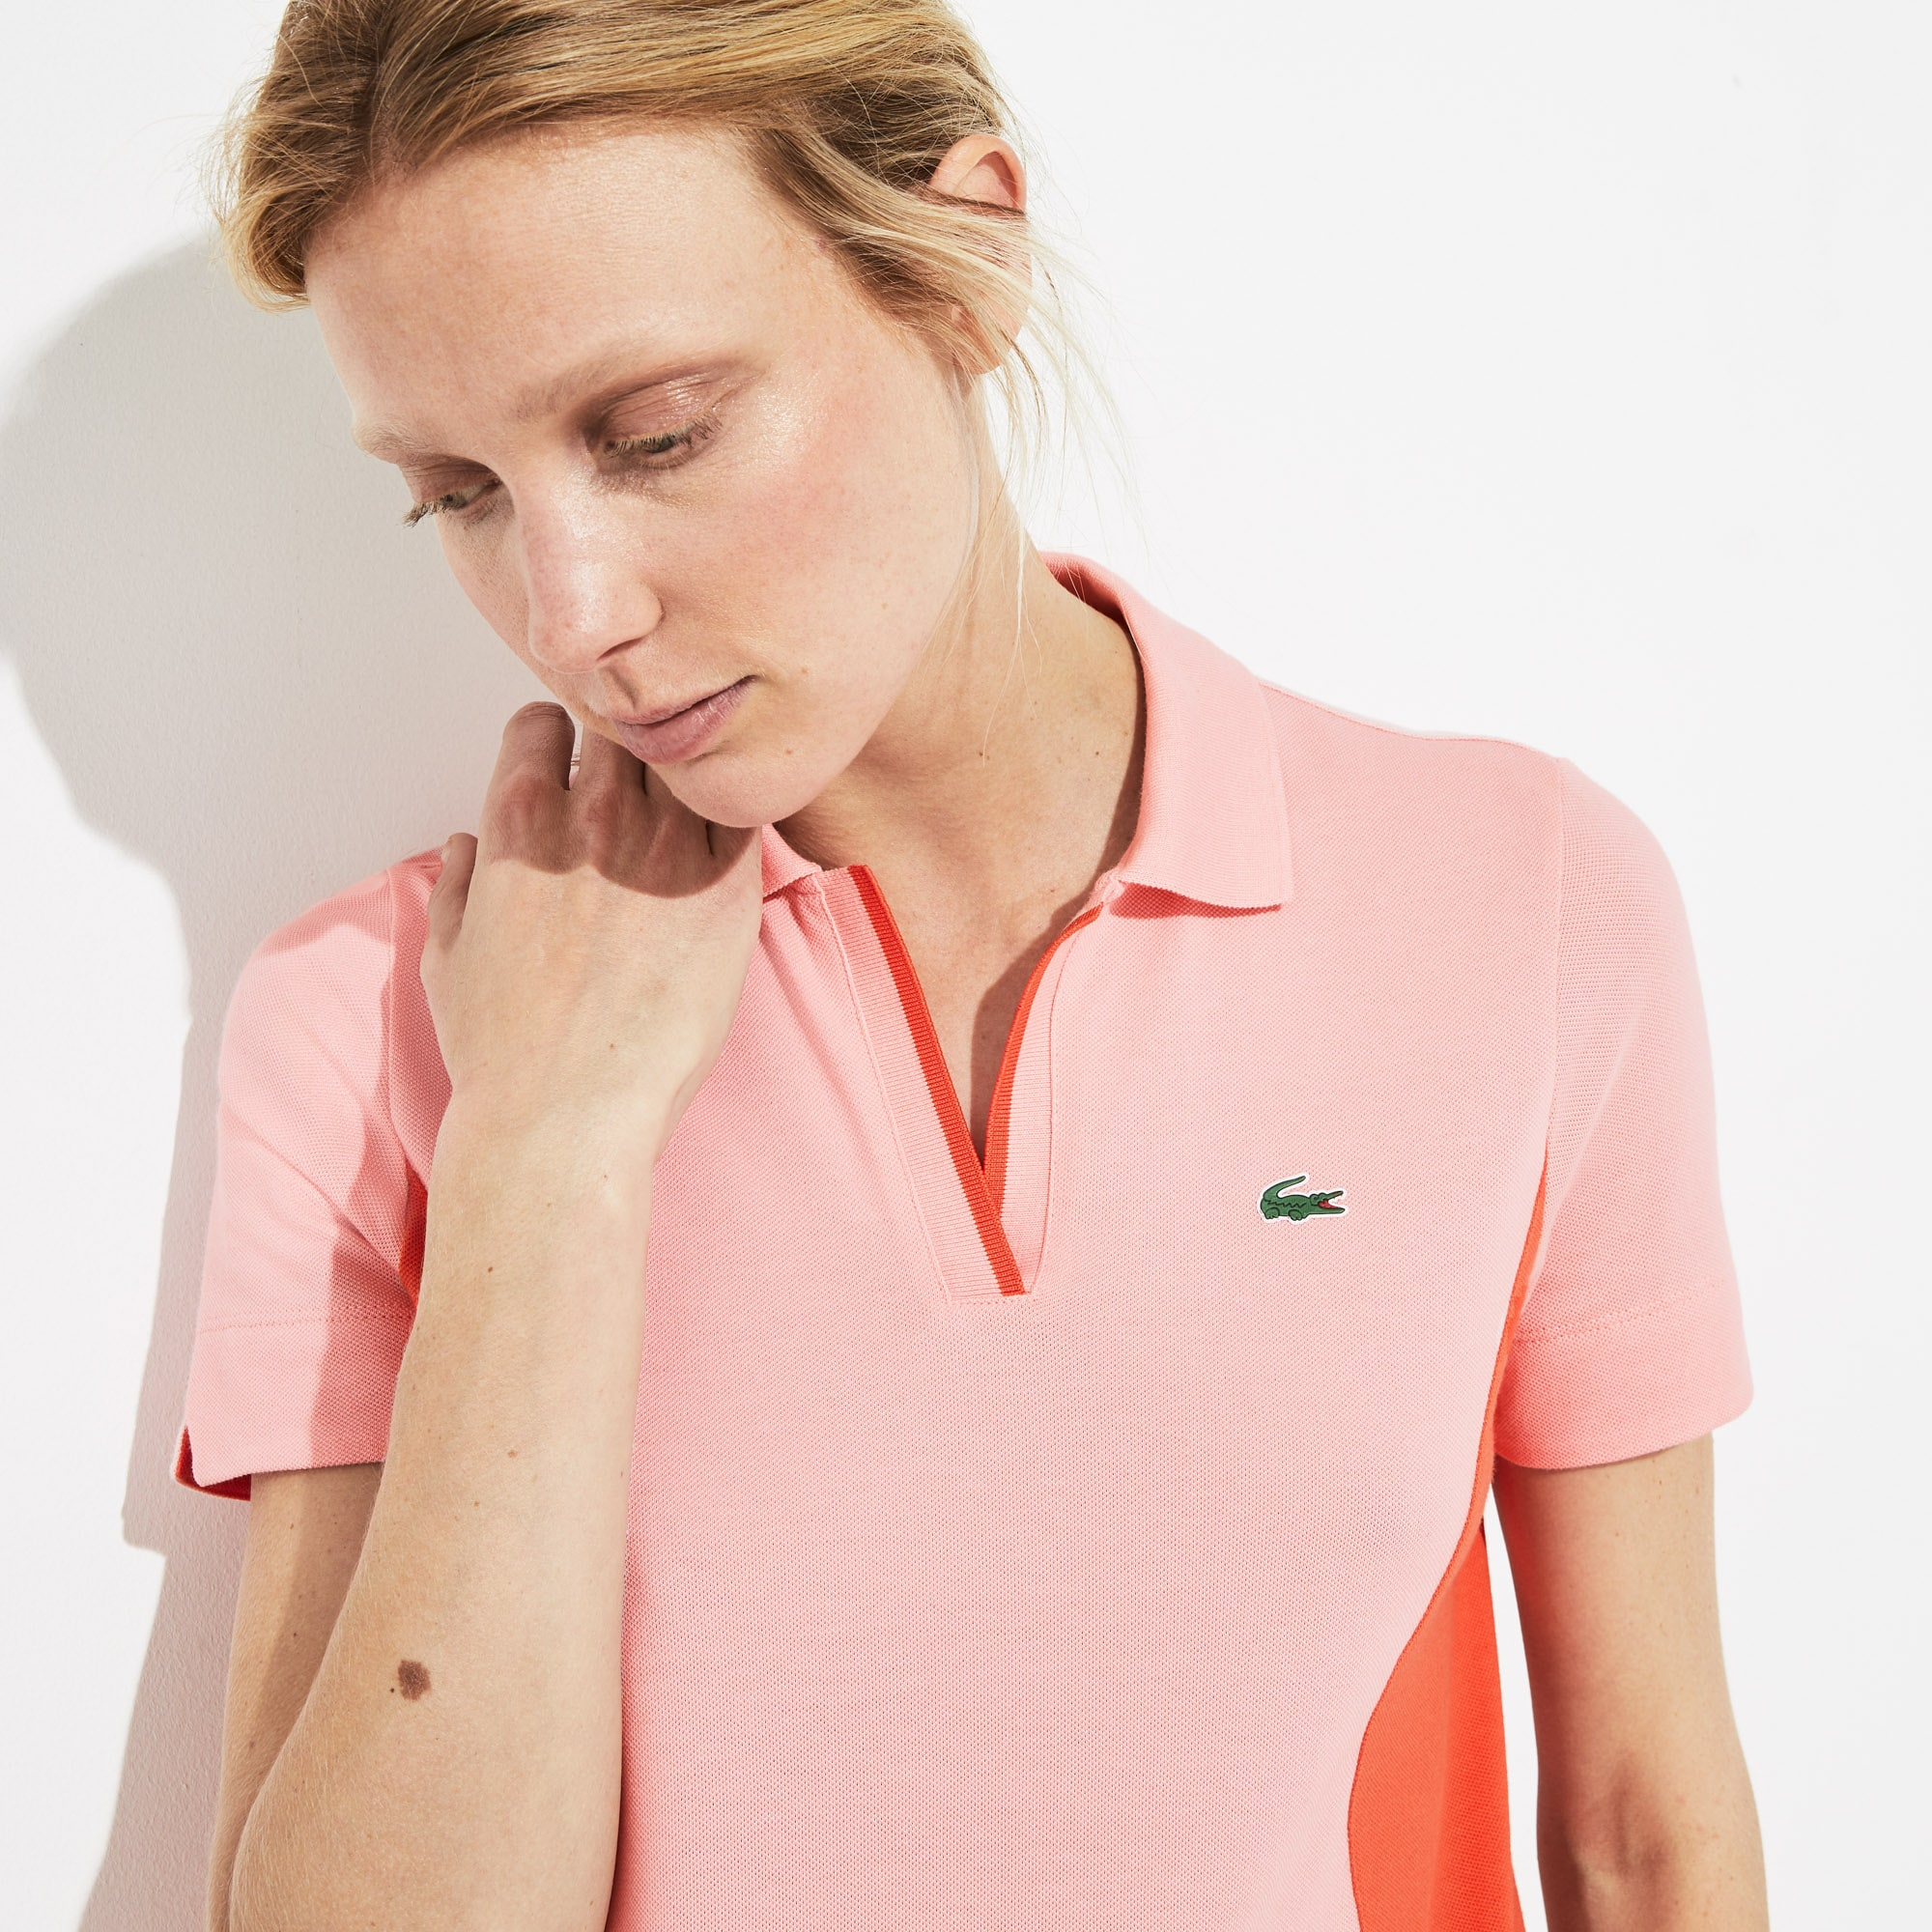 Women's SPORT Open Neck Cotton Golf Polo